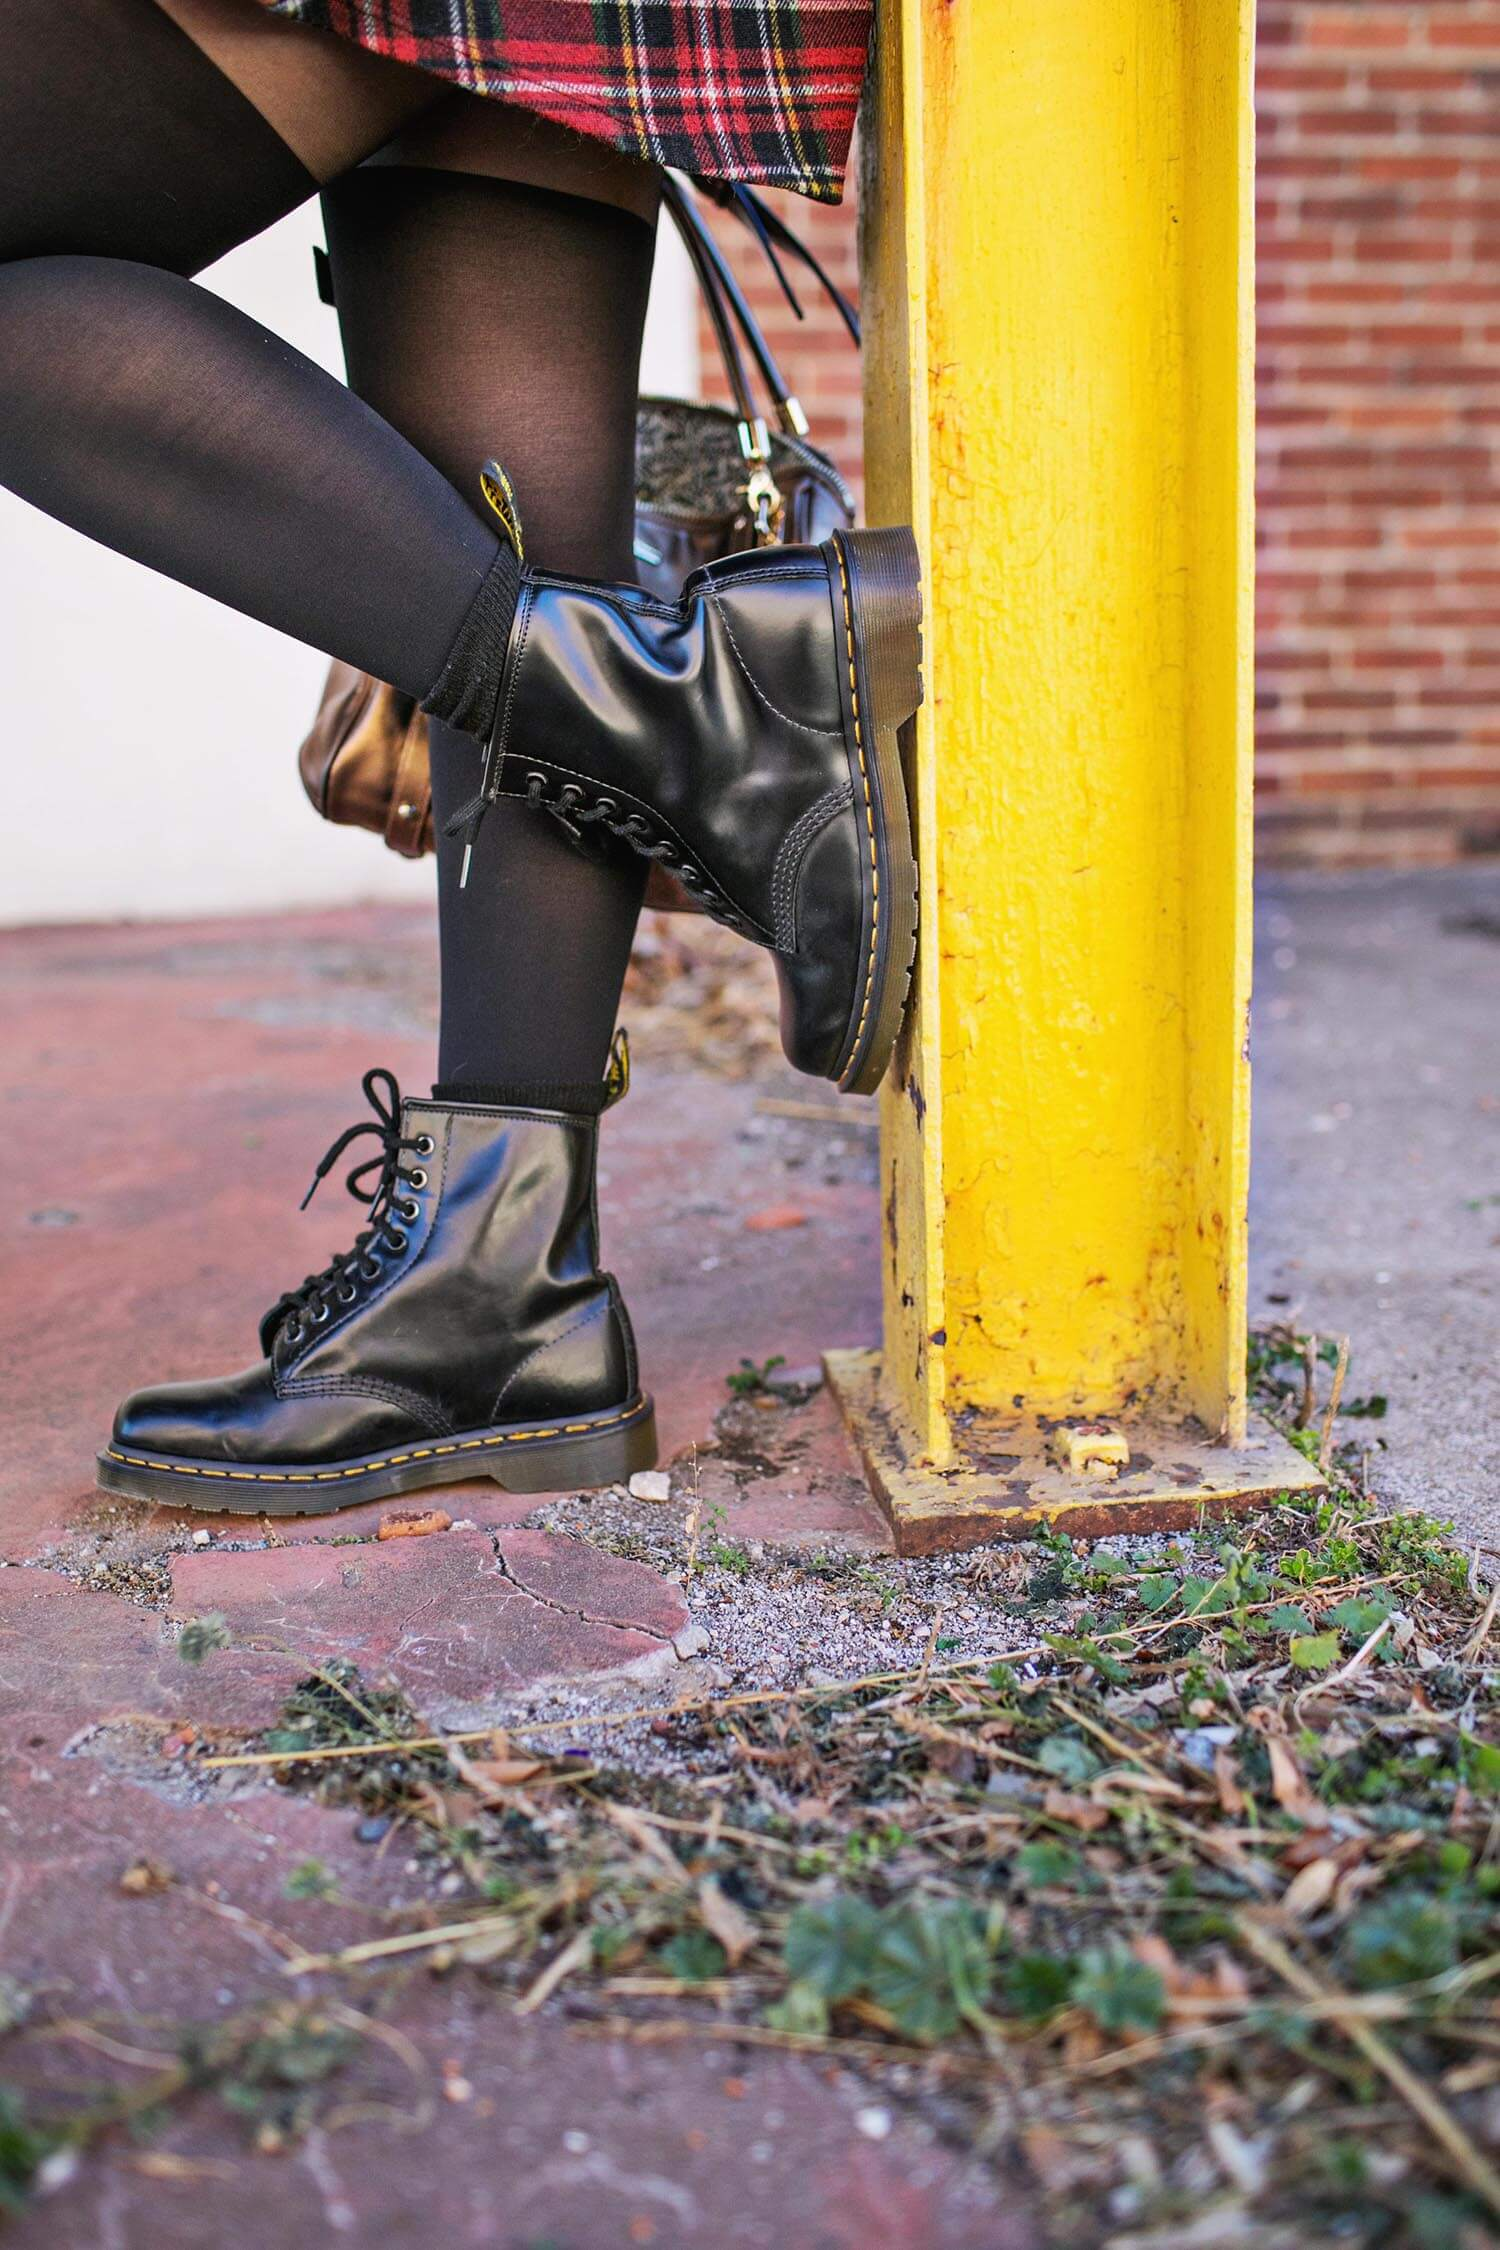 Boots and tights